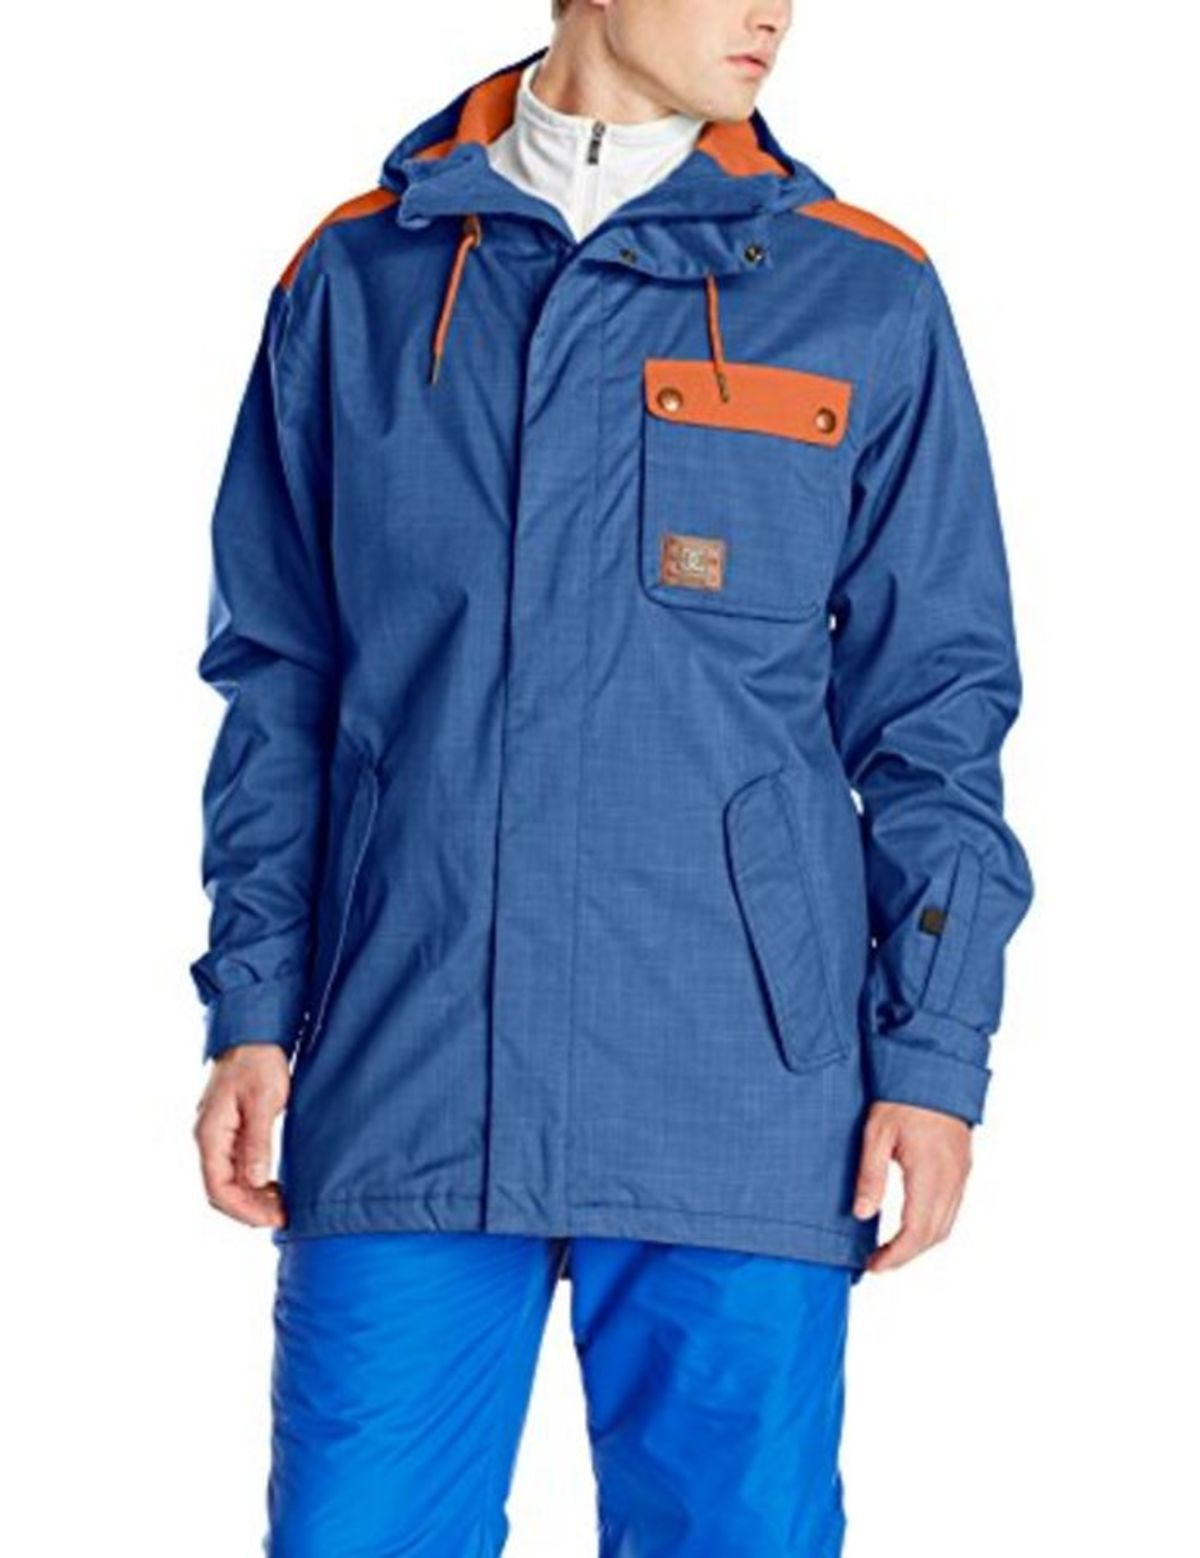 Headline for Best Rated Cheap Men Insulated-Down Ski Jackets 2020 | Discount Snowboard Jackets Reviews